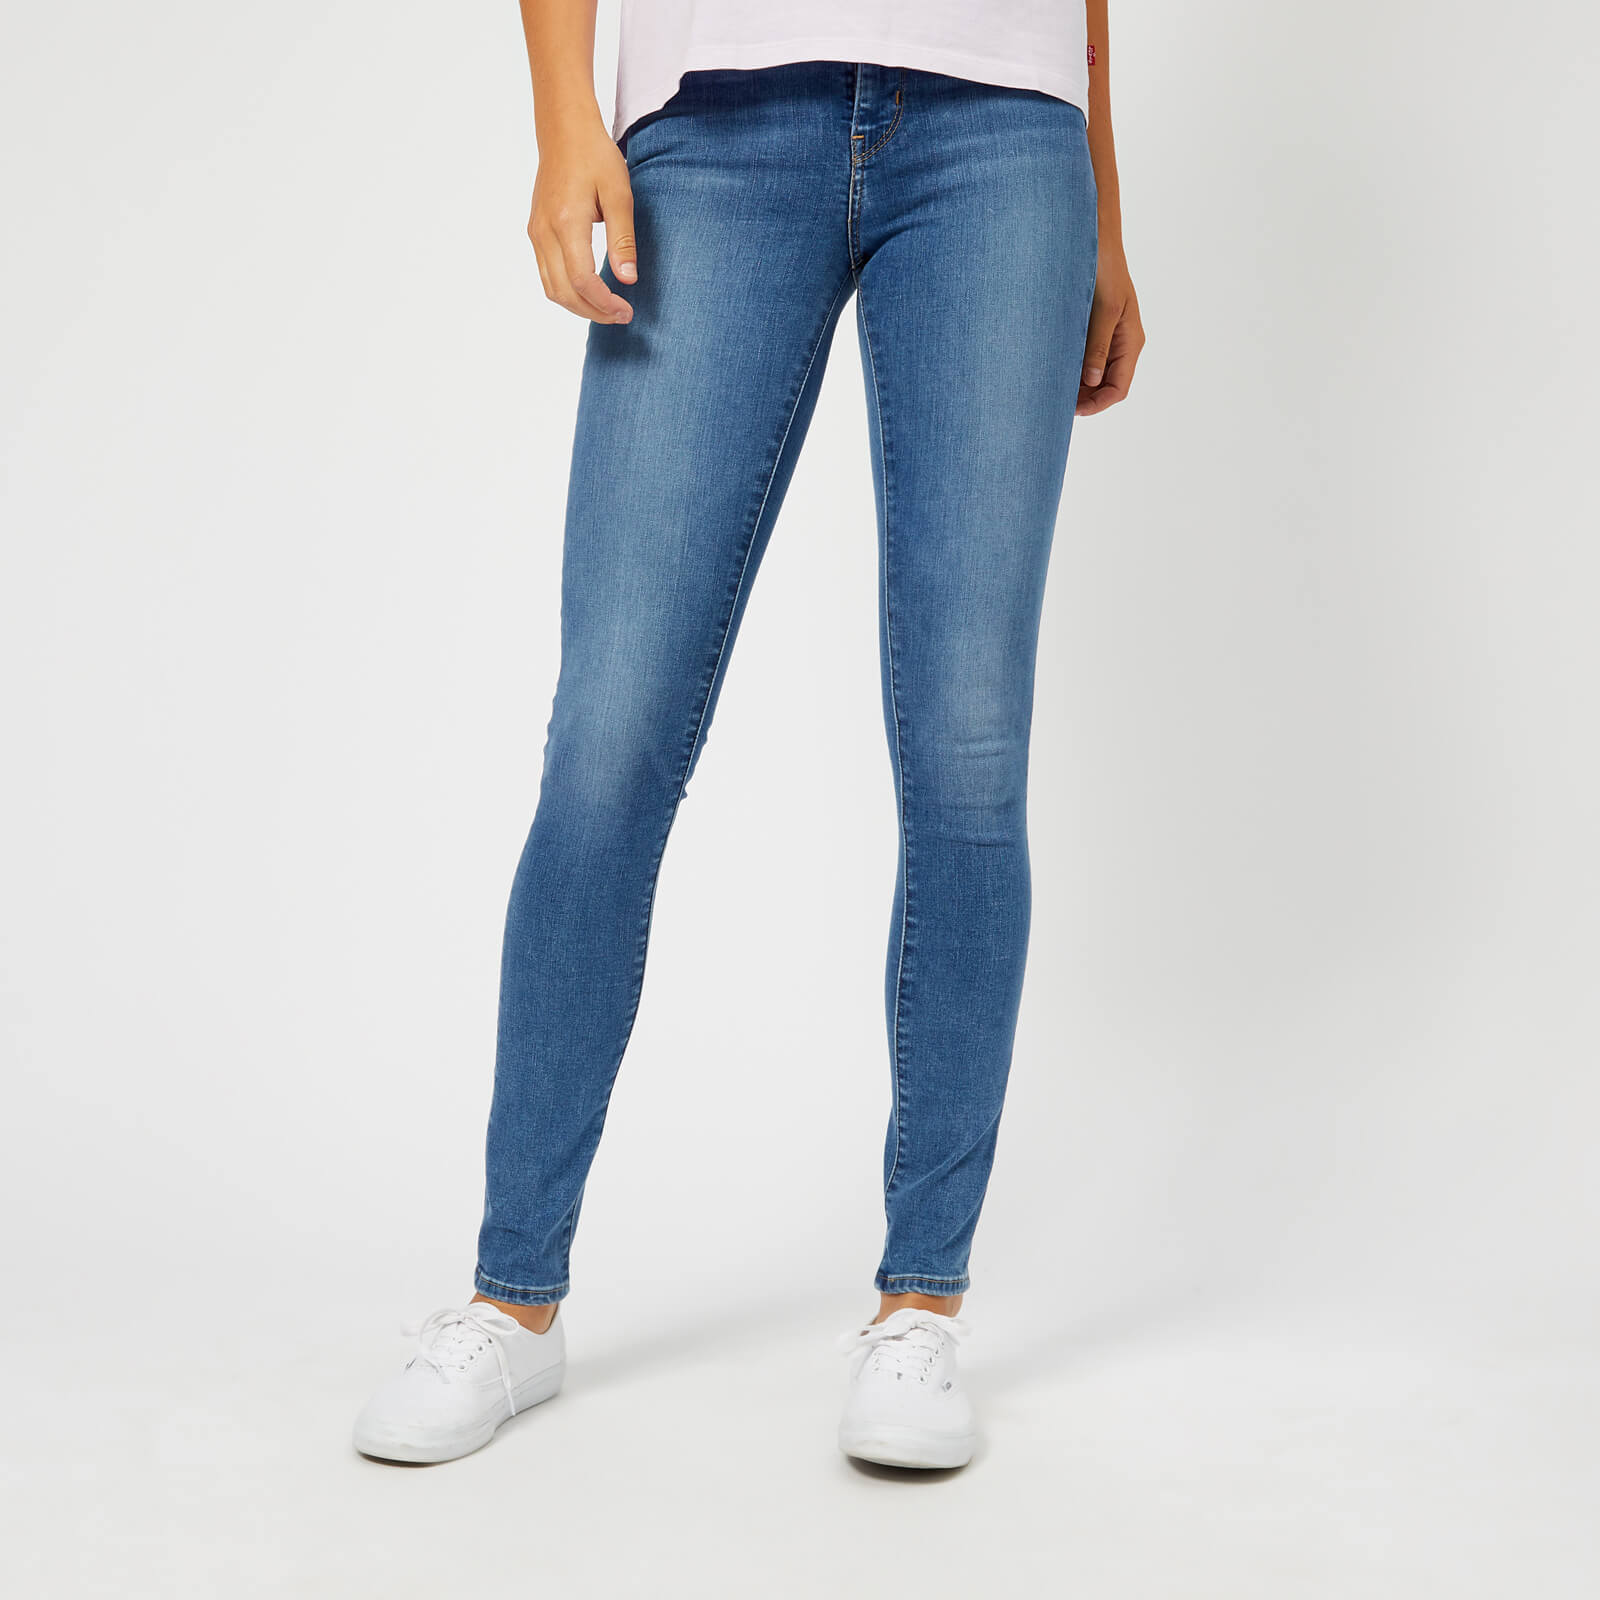 b4dd96a7 Levi's Women's 721 High Rise Skinny Jeans - Dust in the Wind Clothing |  TheHut.com